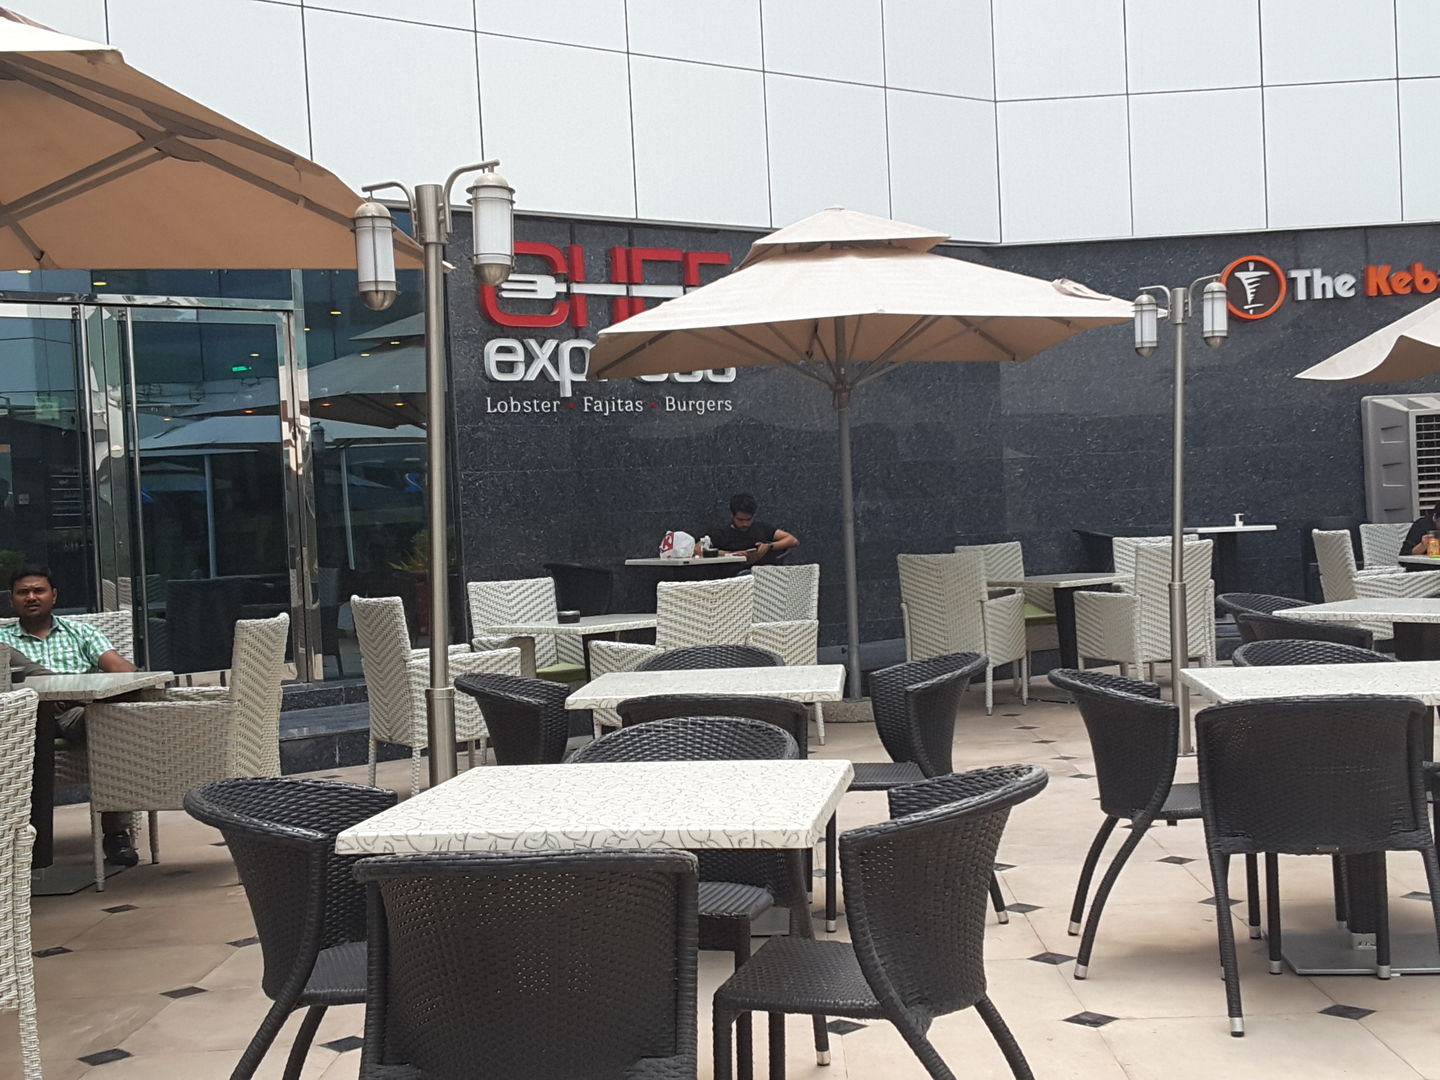 HiDubai-business-chef-express-food-beverage-restaurants-bars-dubai-media-city-al-sufouh-2-dubai-2